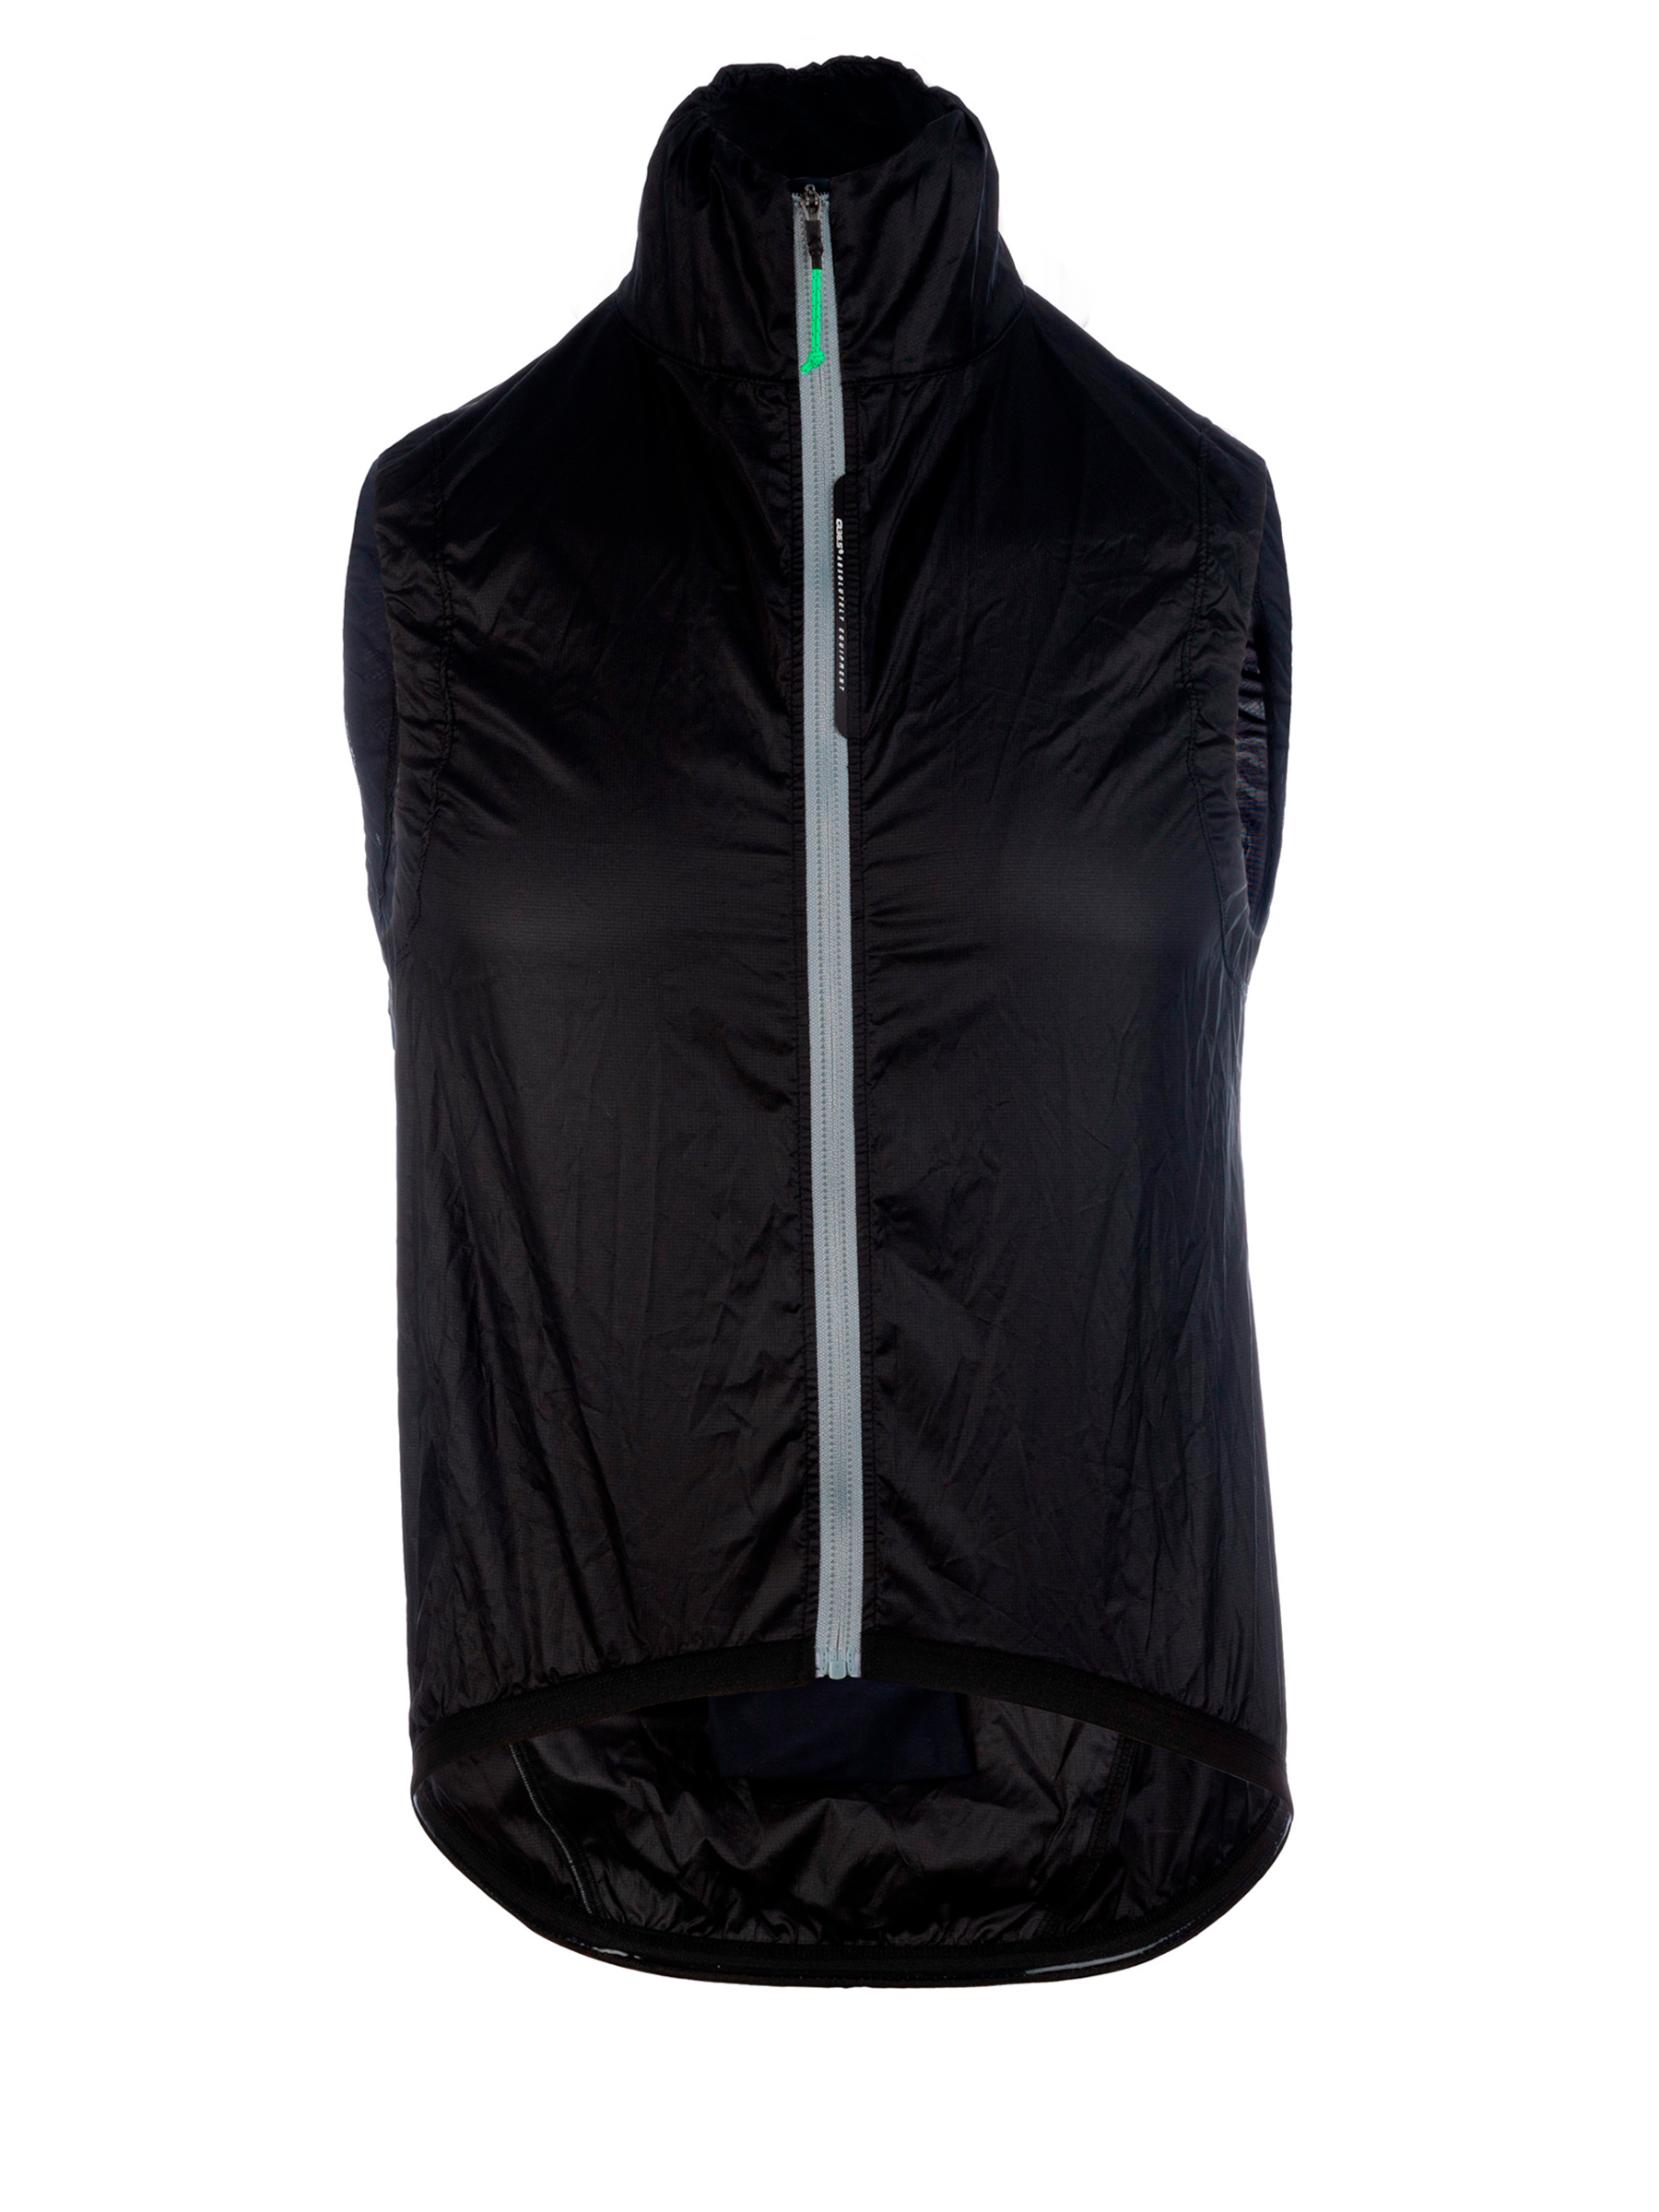 Gilet ciclismo antivento Air vest Q36.5